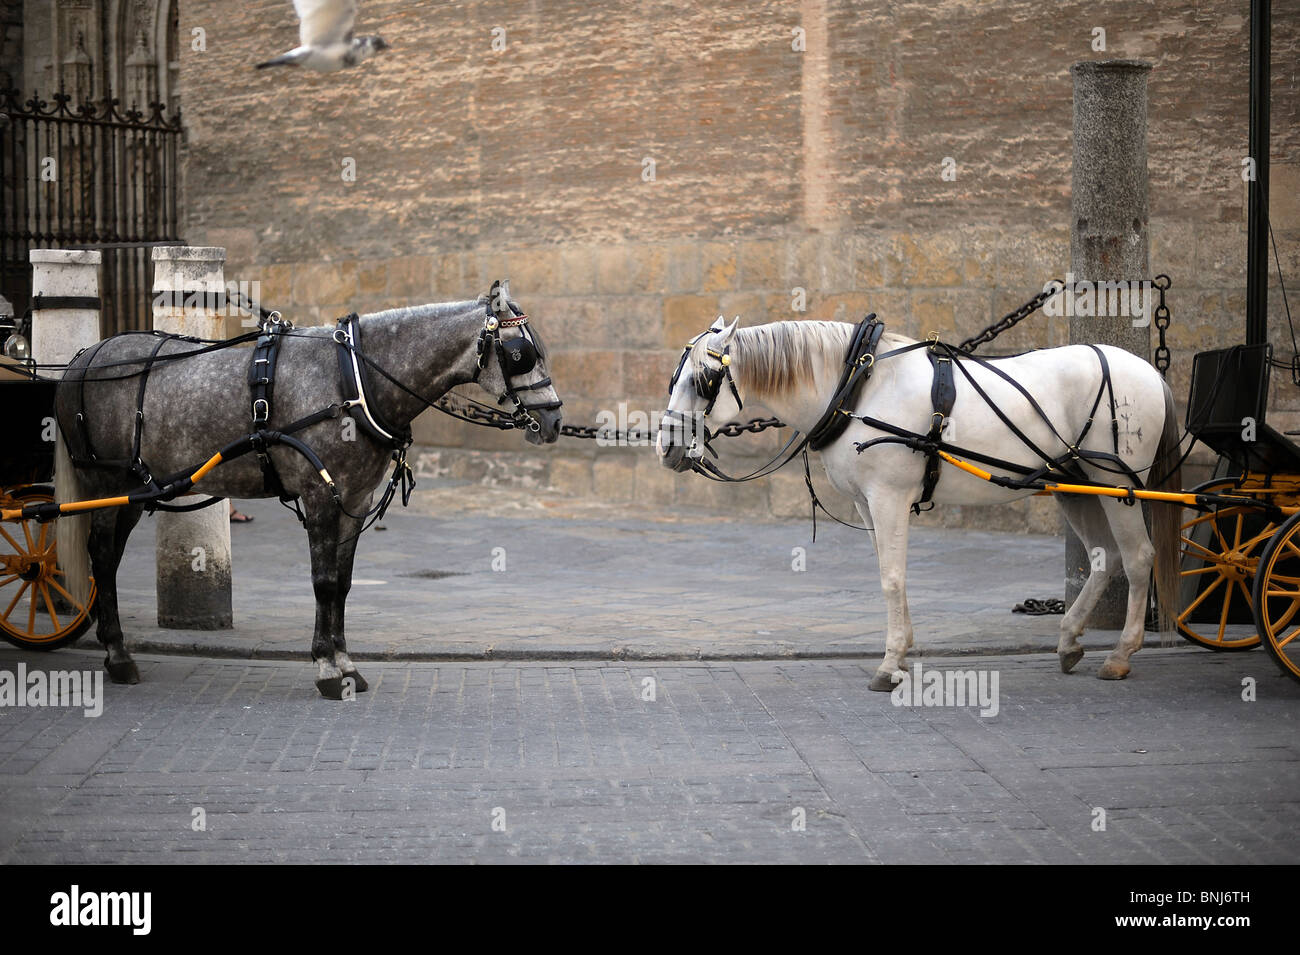 horses seen in Seville, Spain, Spanien, Sevilla, Andalusien, Andalisia - Stock Image